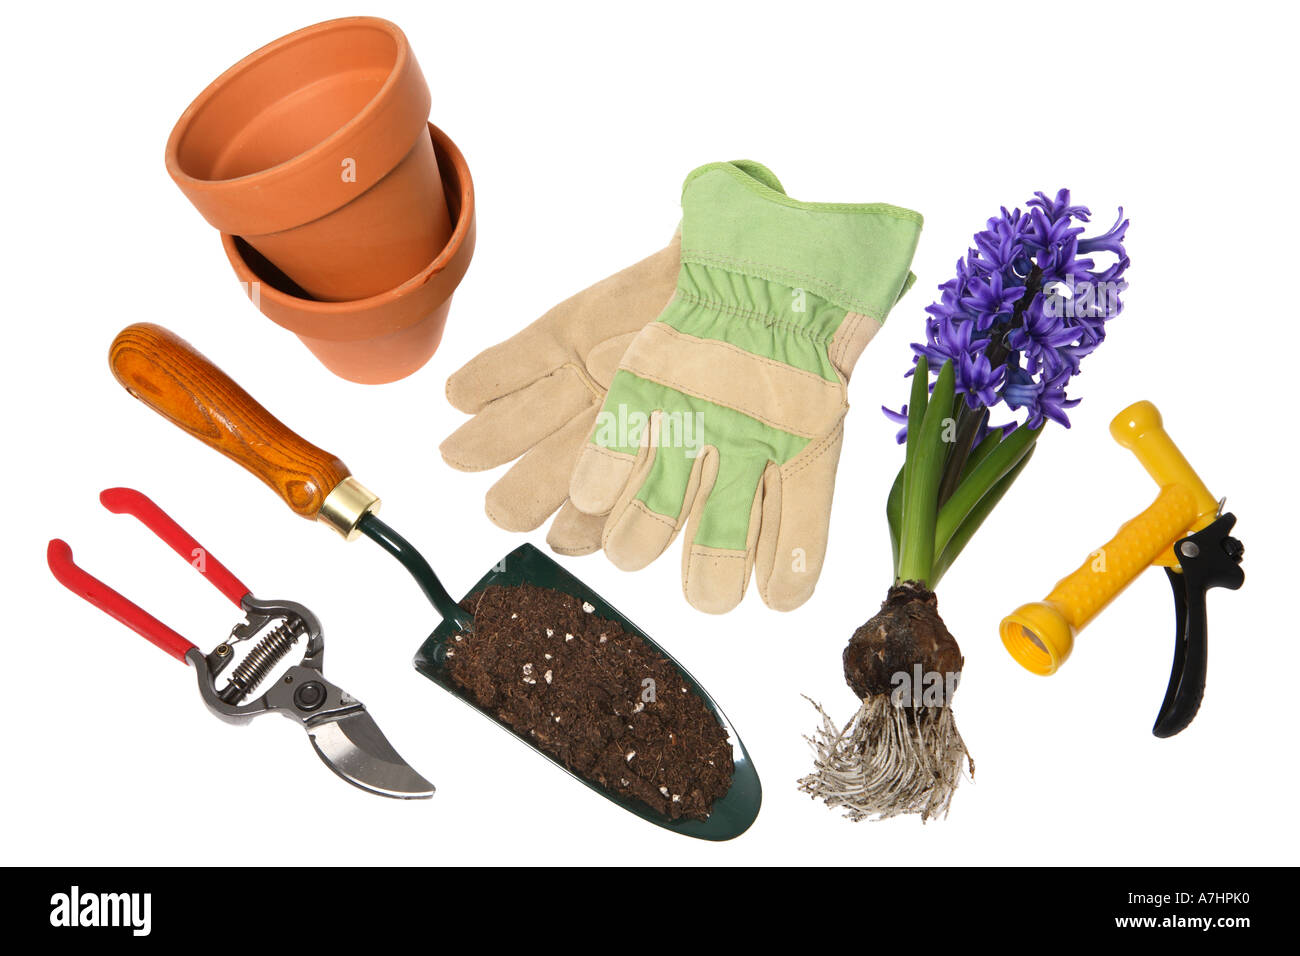 Gardening objects: Pruning shears, shovel with potting soil, terra cotta pots, gardening gloves, Hyacinth bulbs and spray nozzle - Stock Image